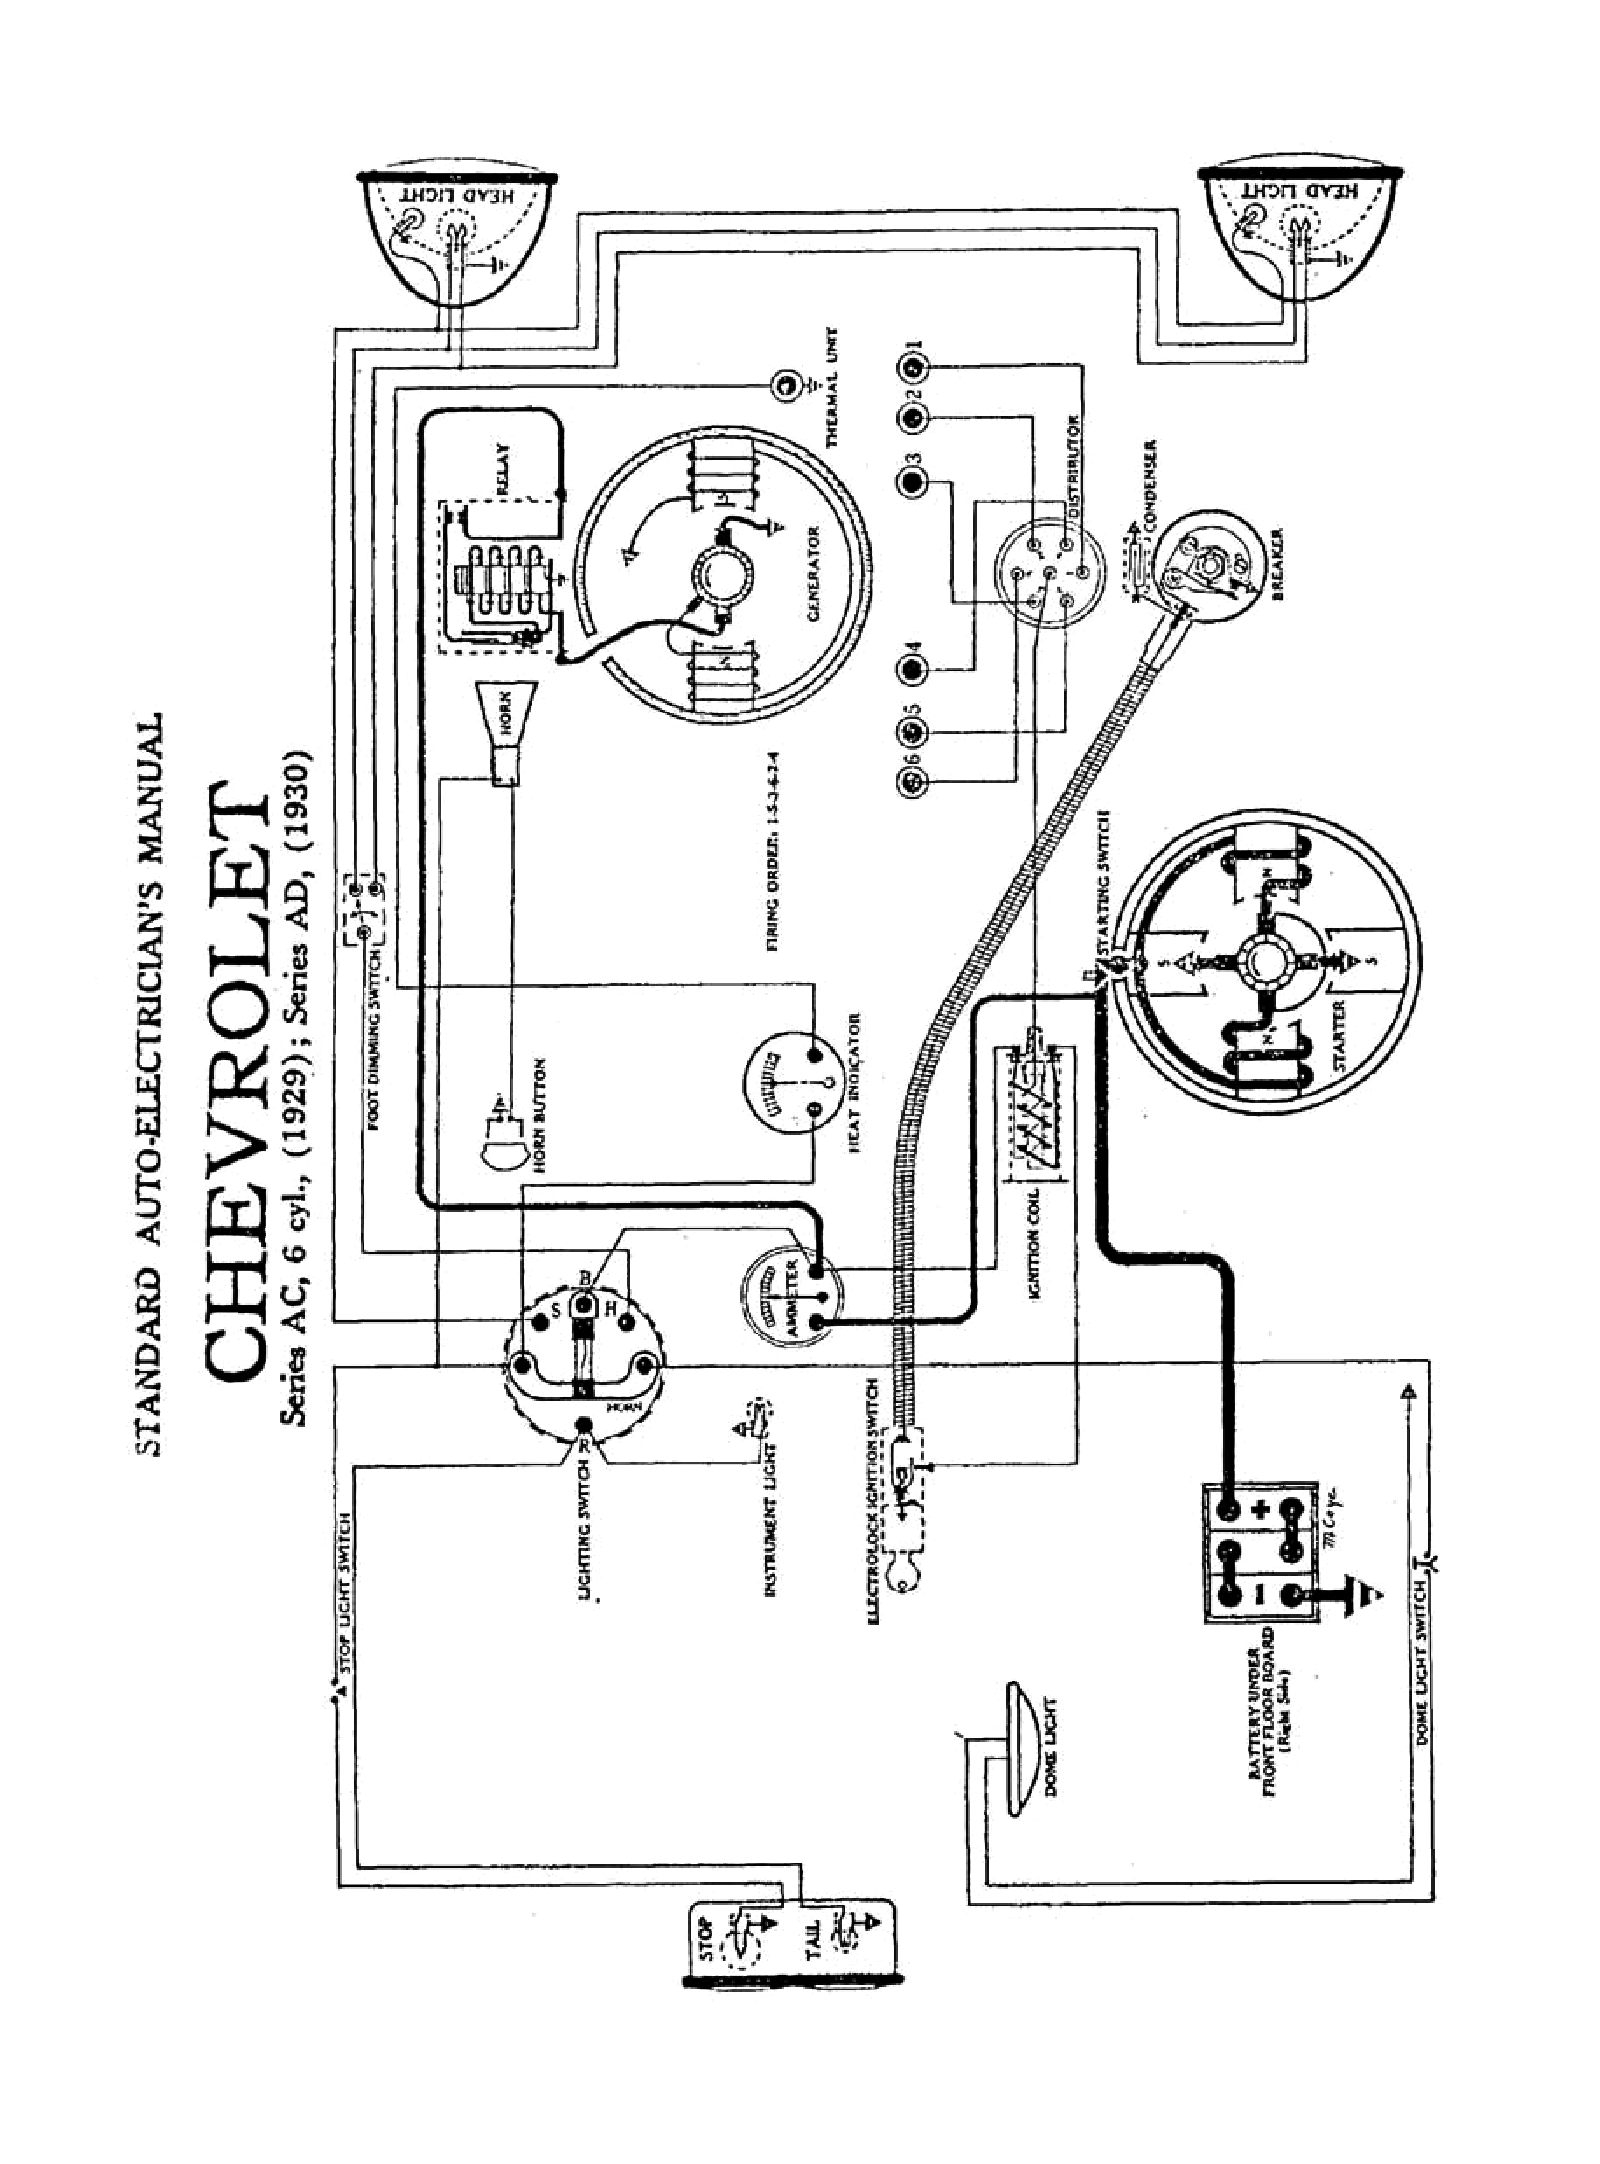 12 Volt Wiring Diagram For Ford 9n